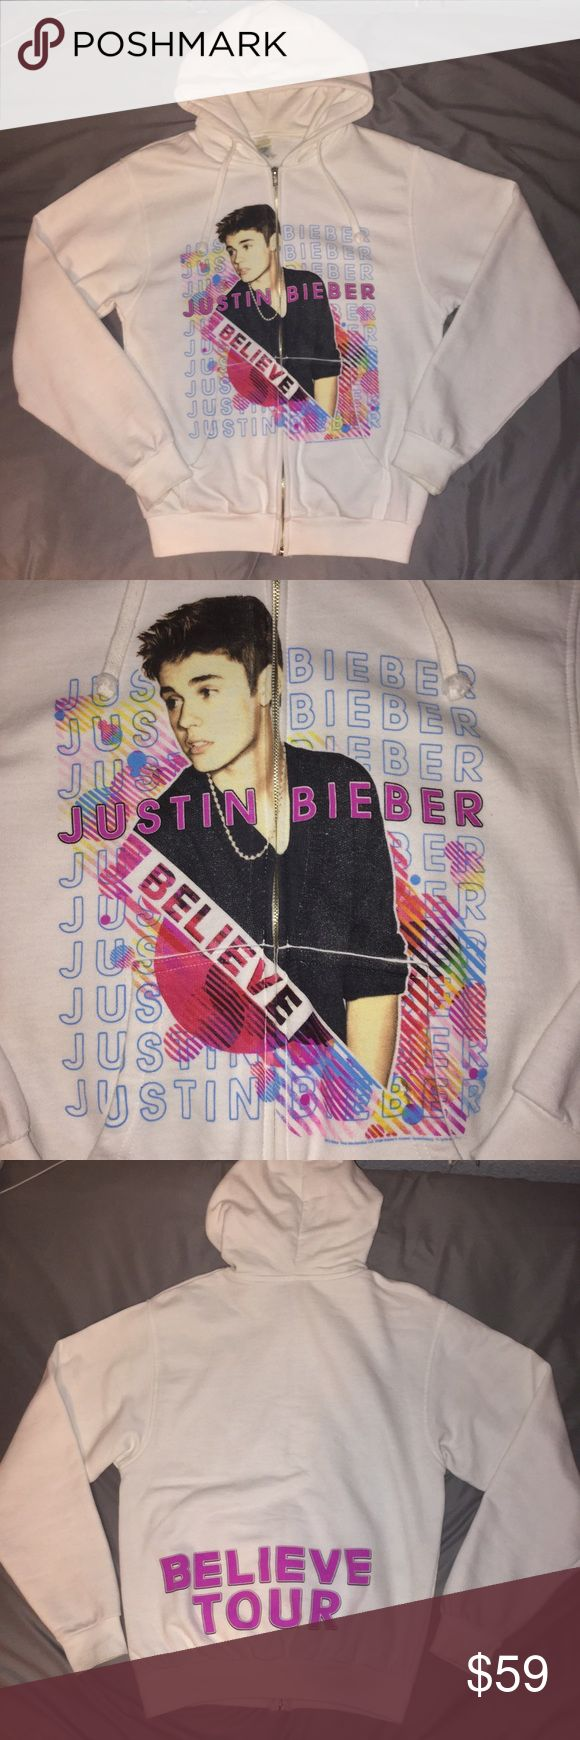 Justin Bieber believe tour hoodie I'm selling this cheaper on the ⓂⒺⓇⒸⒶⓇⒾ app / good condition / trades not accepted / offers are welcome Jackets & Coats